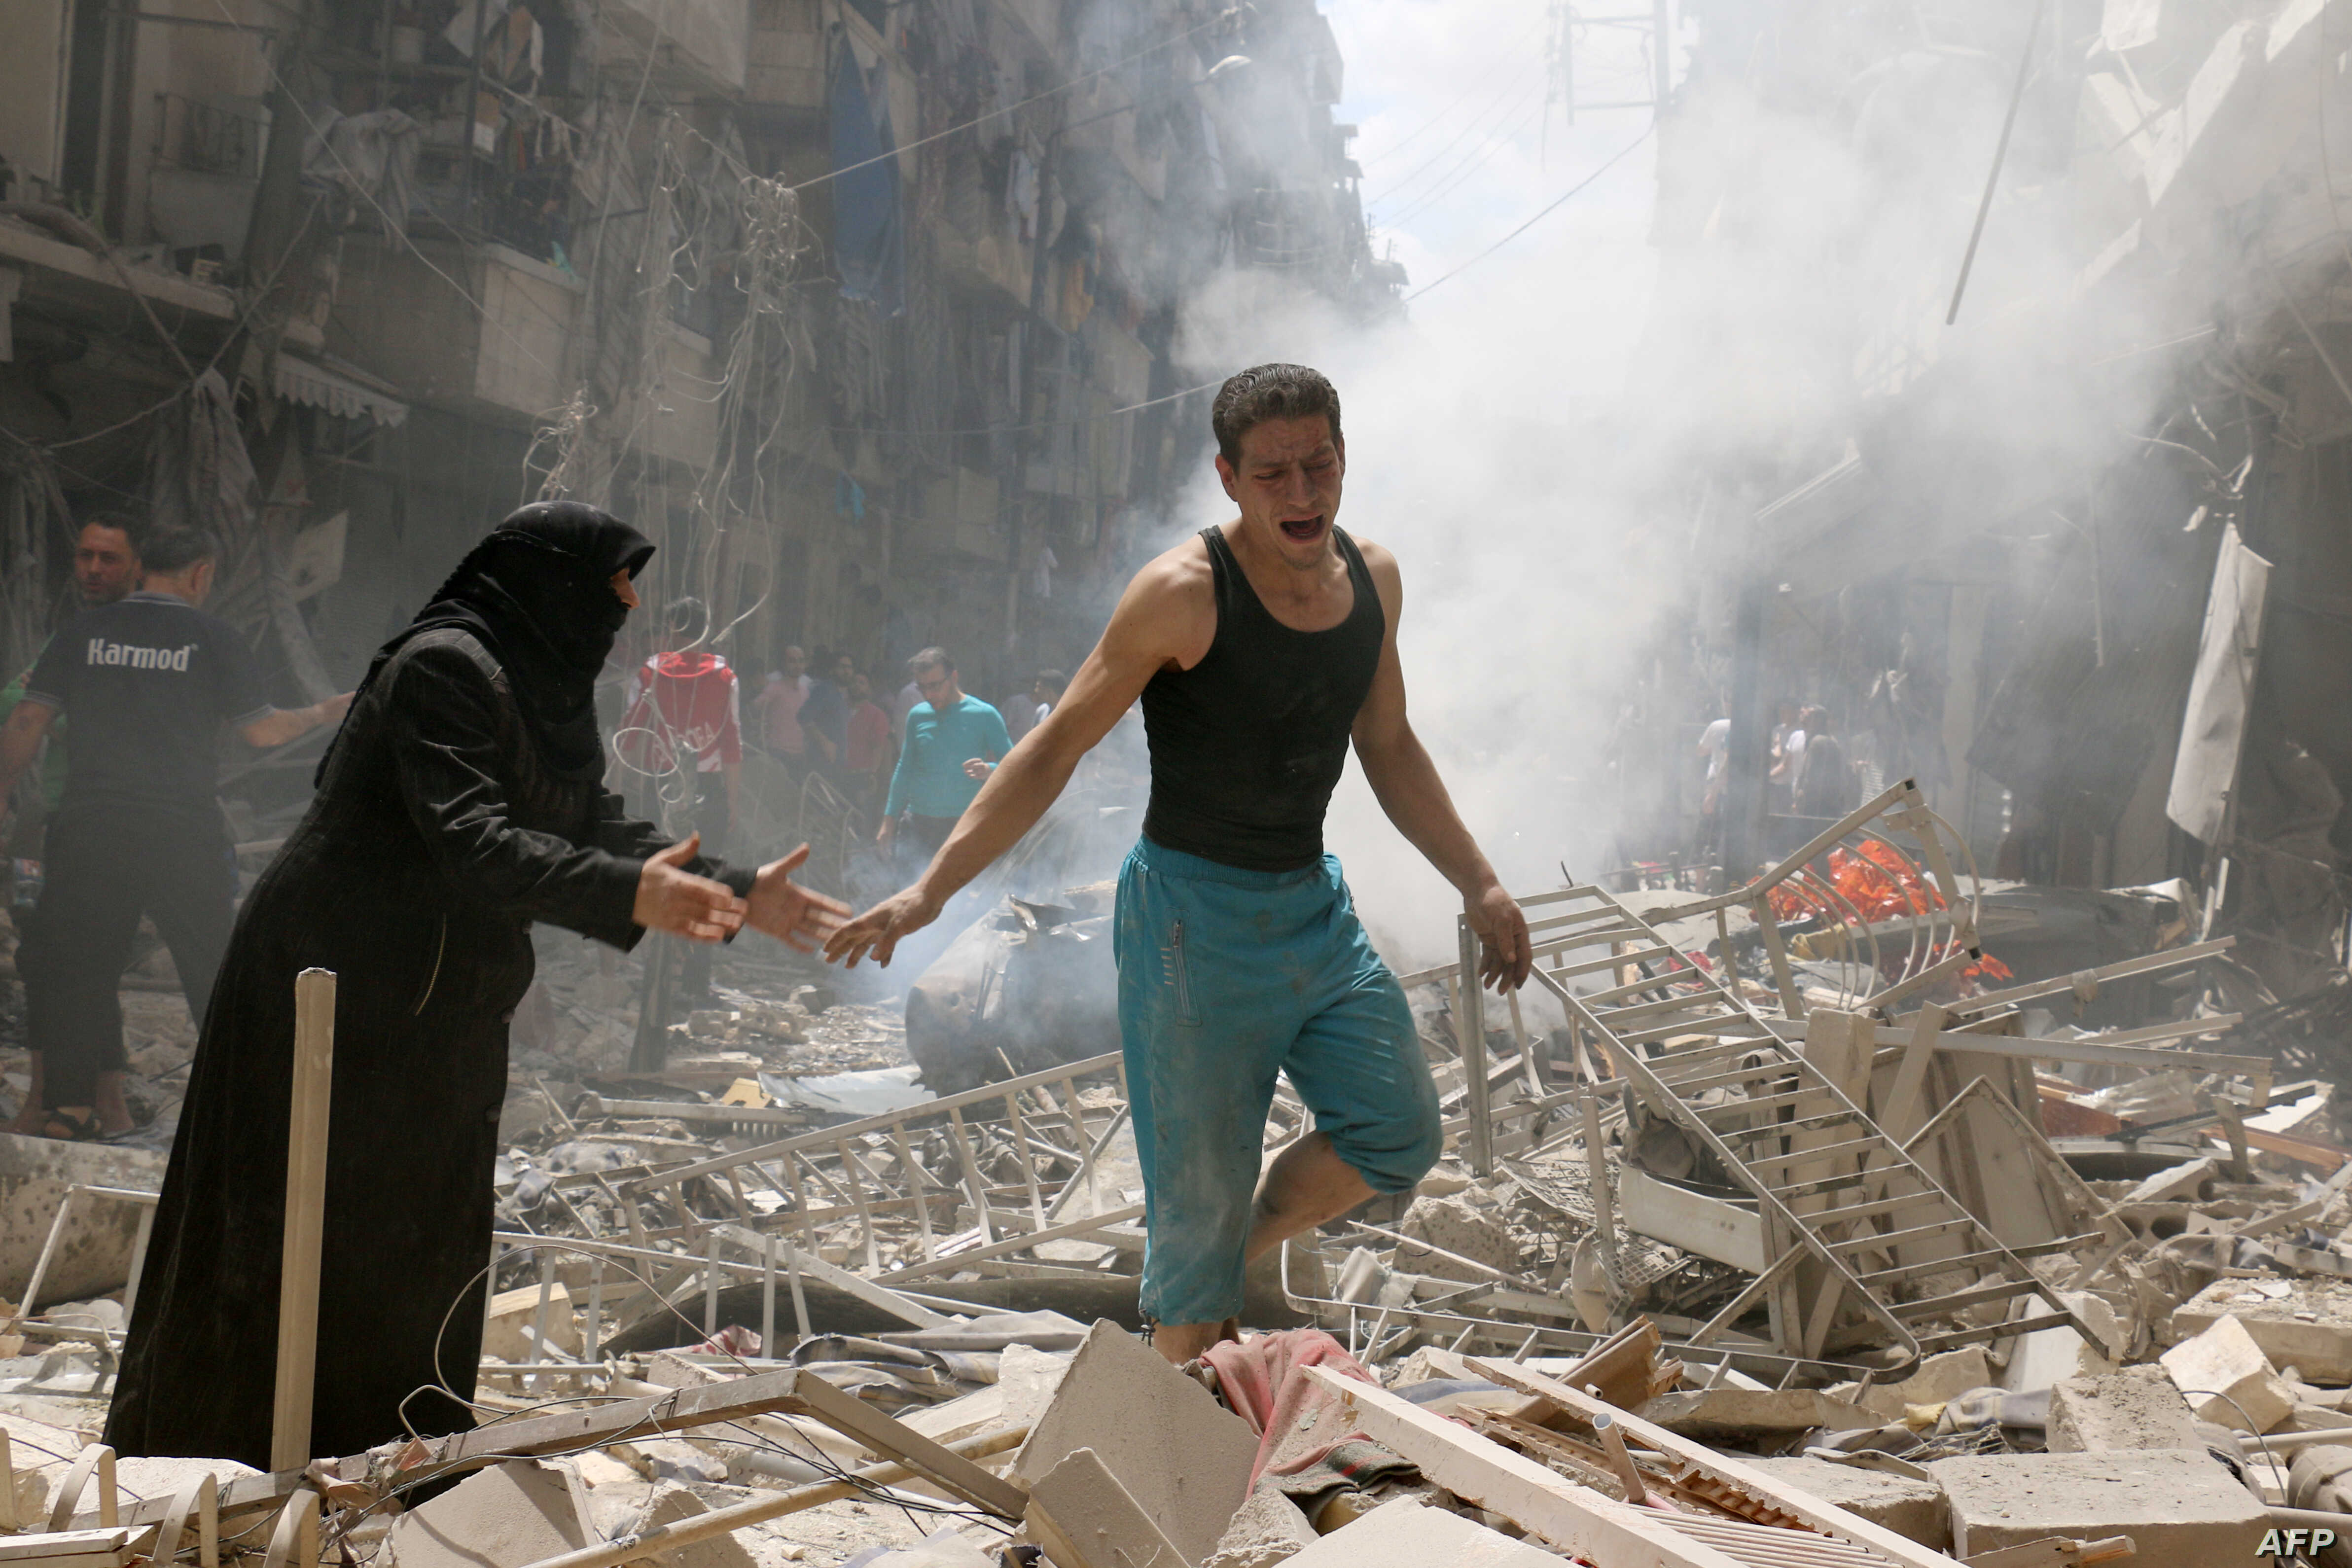 People walk amid the rubble of destroyed buildings following a reported air strike on the rebel-held neighborhood of al-Kalasa in the northern Syrian city of Aleppo, on April 28, 2016.